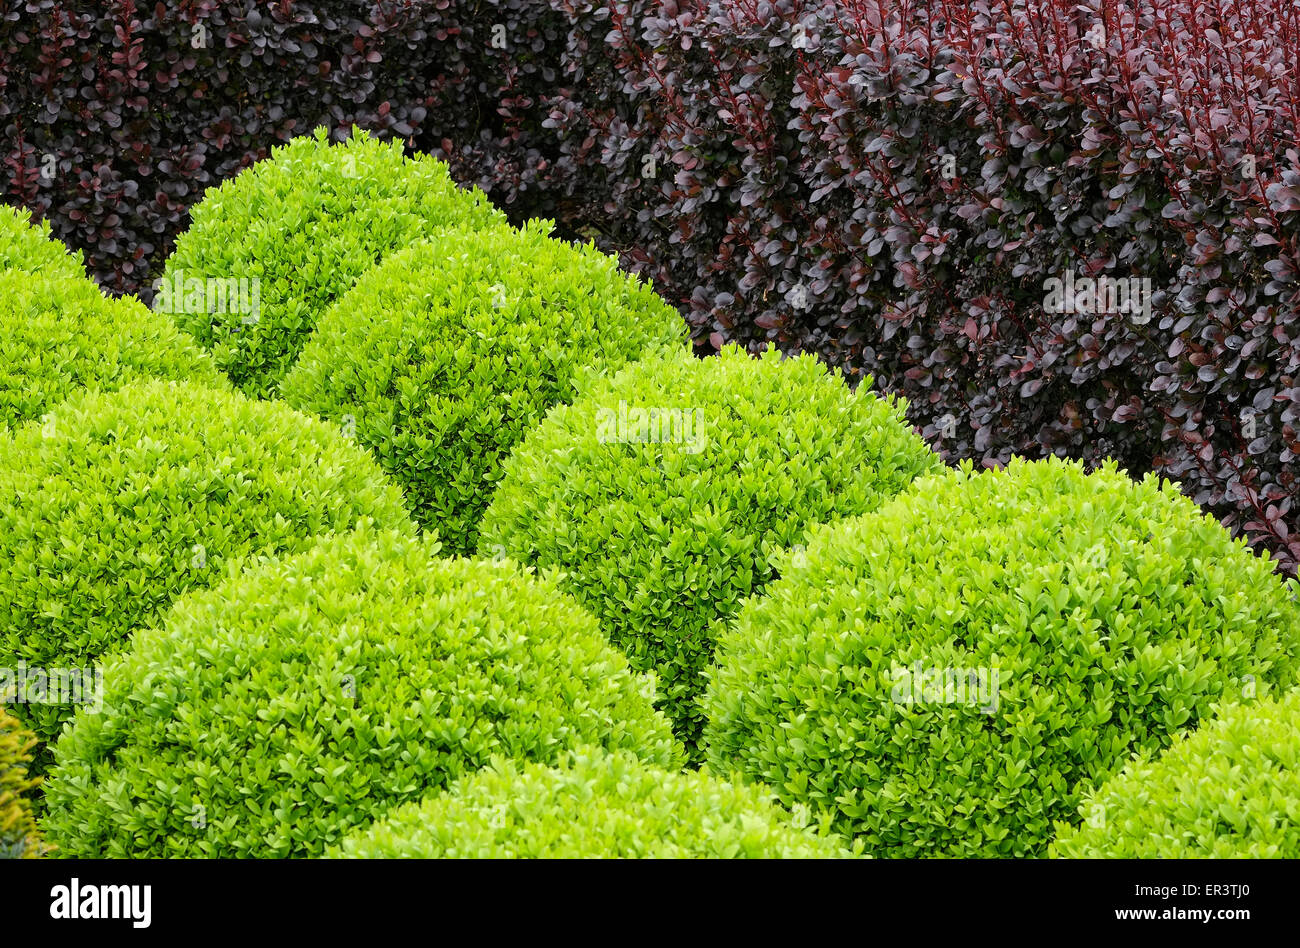 clipped yew ball shaped hedges - Stock Image